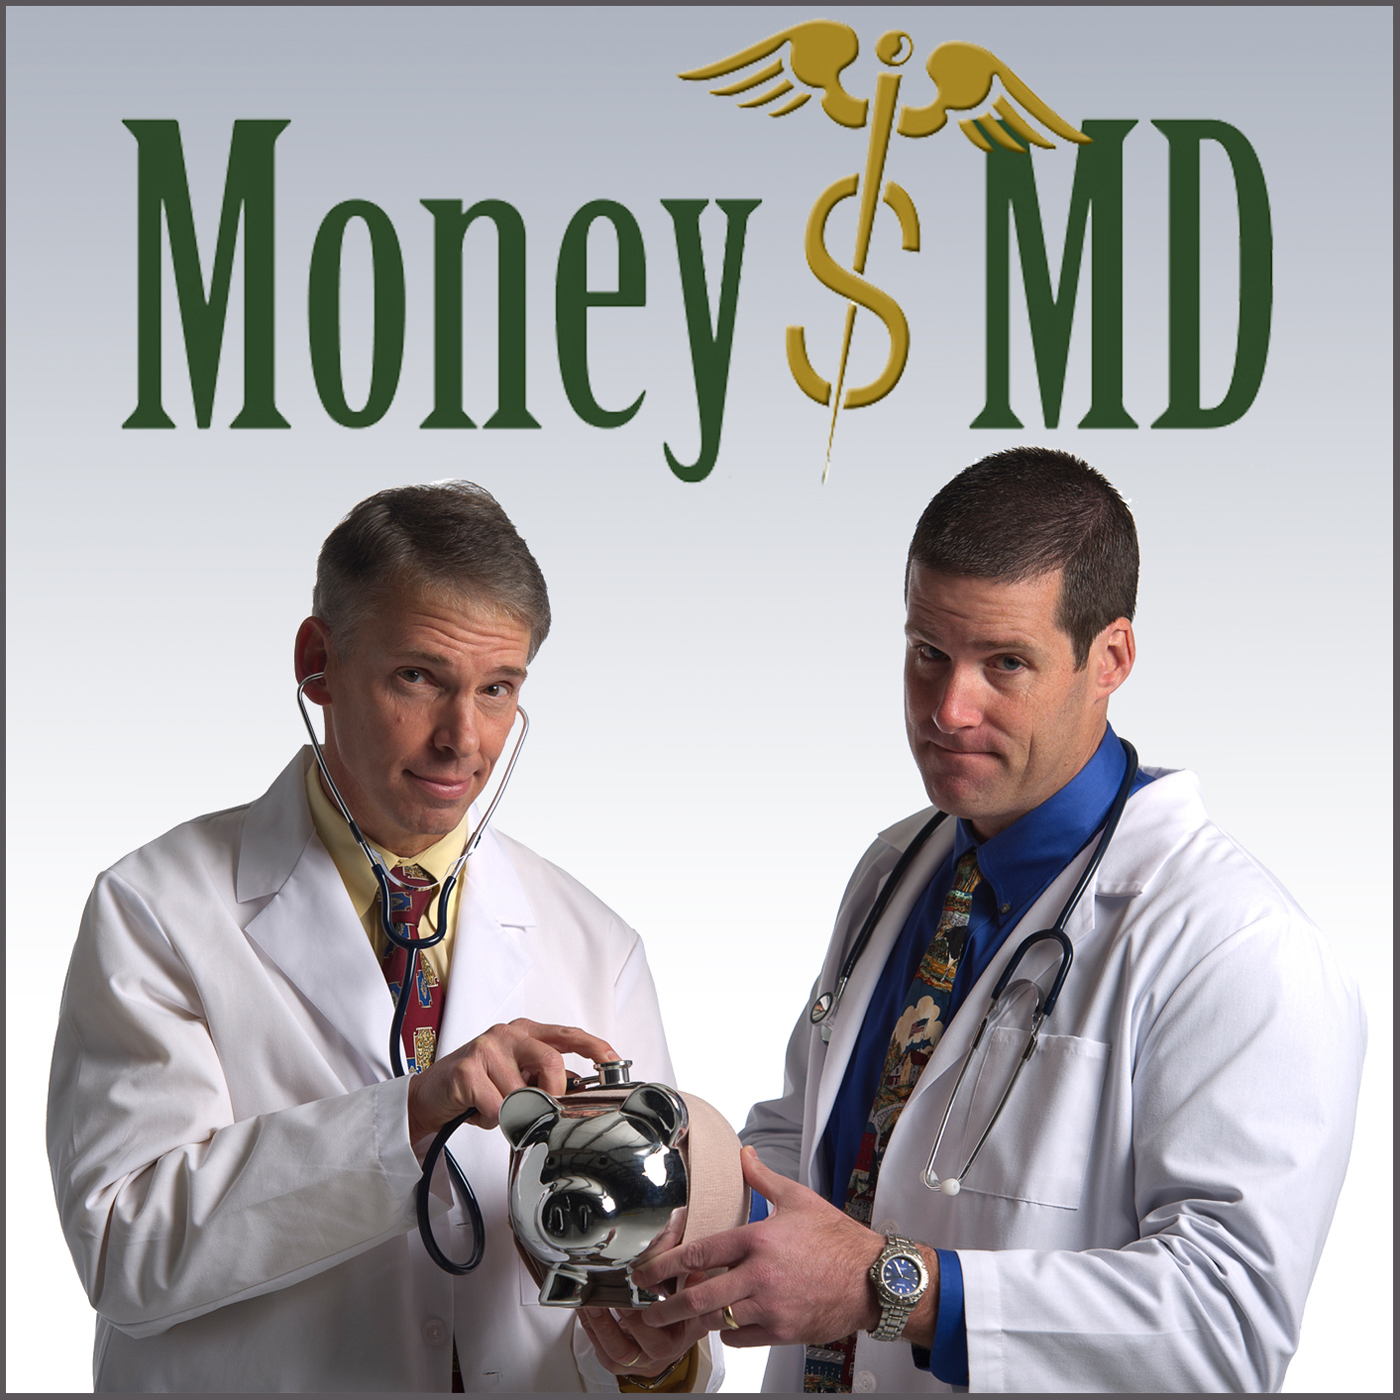 MoneyMD